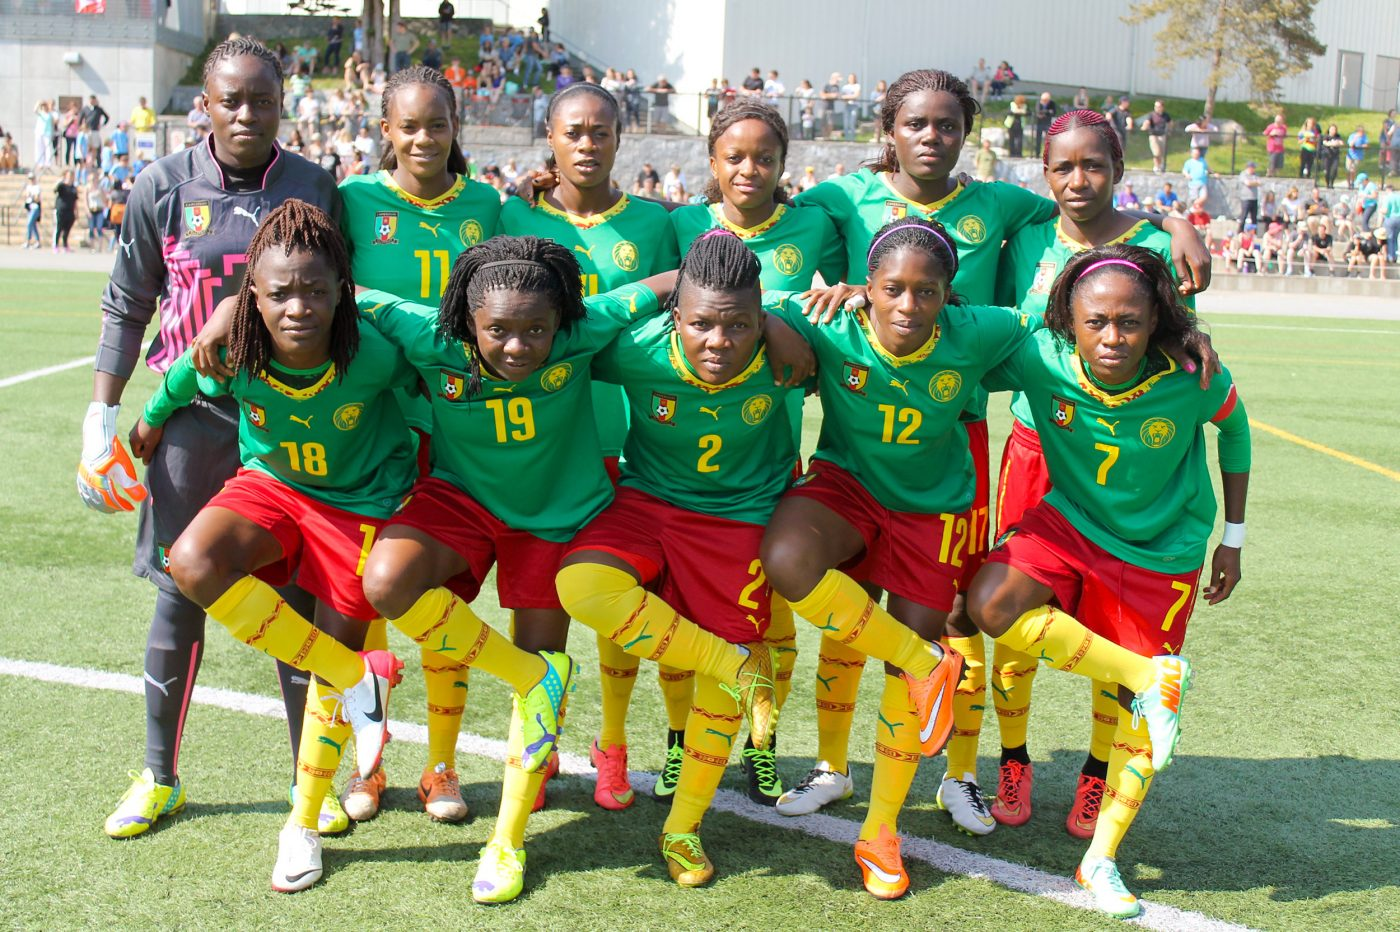 Cameroon FIFA Team Photo